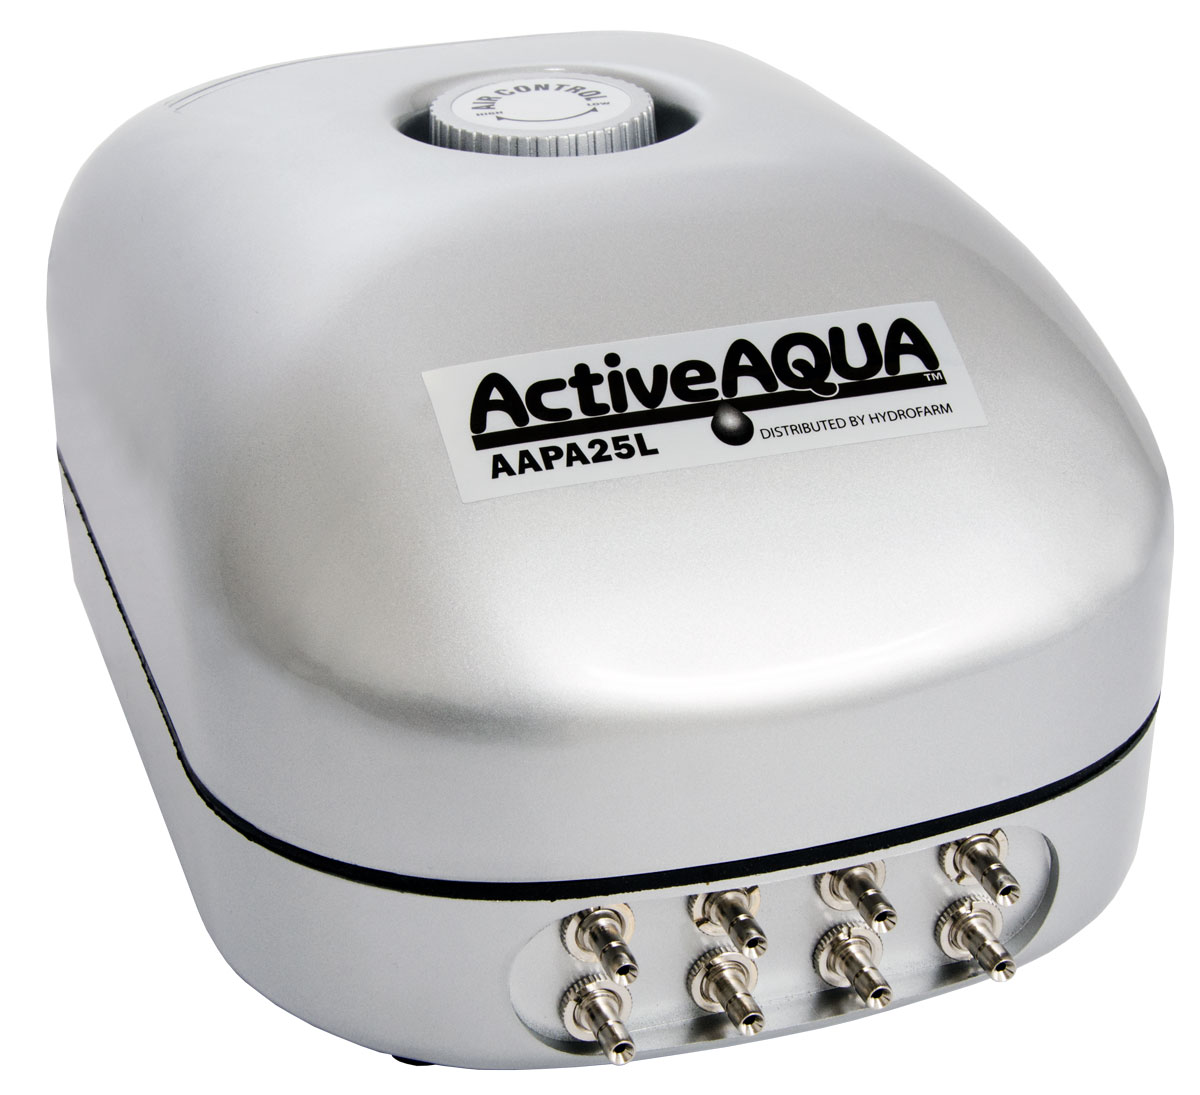 Active Aqua Air Pump, 8 Outlets, 12W, 25 L/min